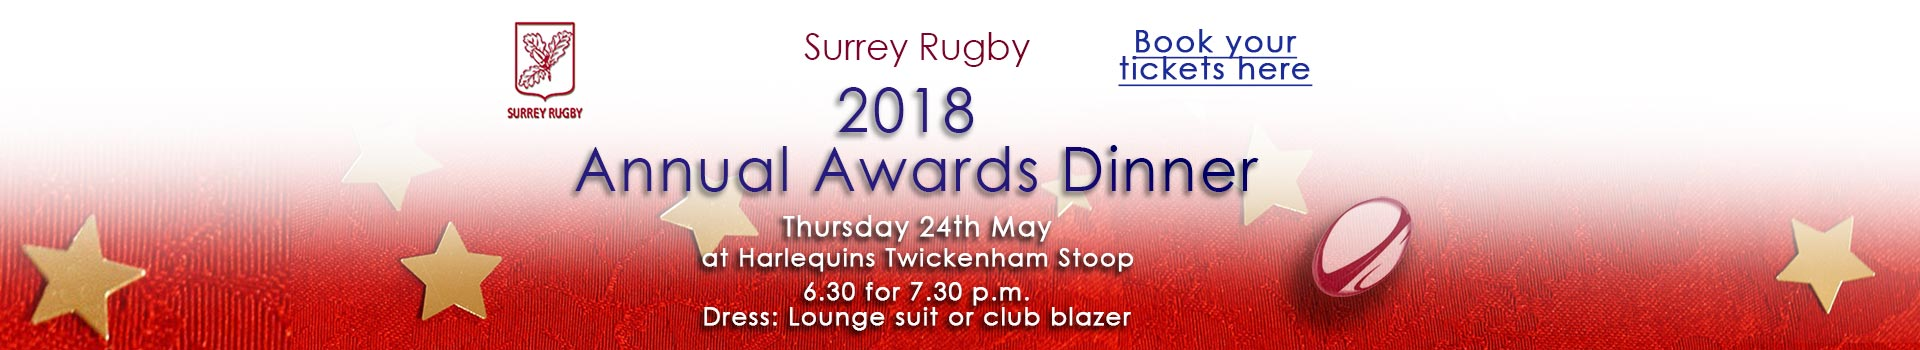 Surrey Rugby Awards Dinner 2018